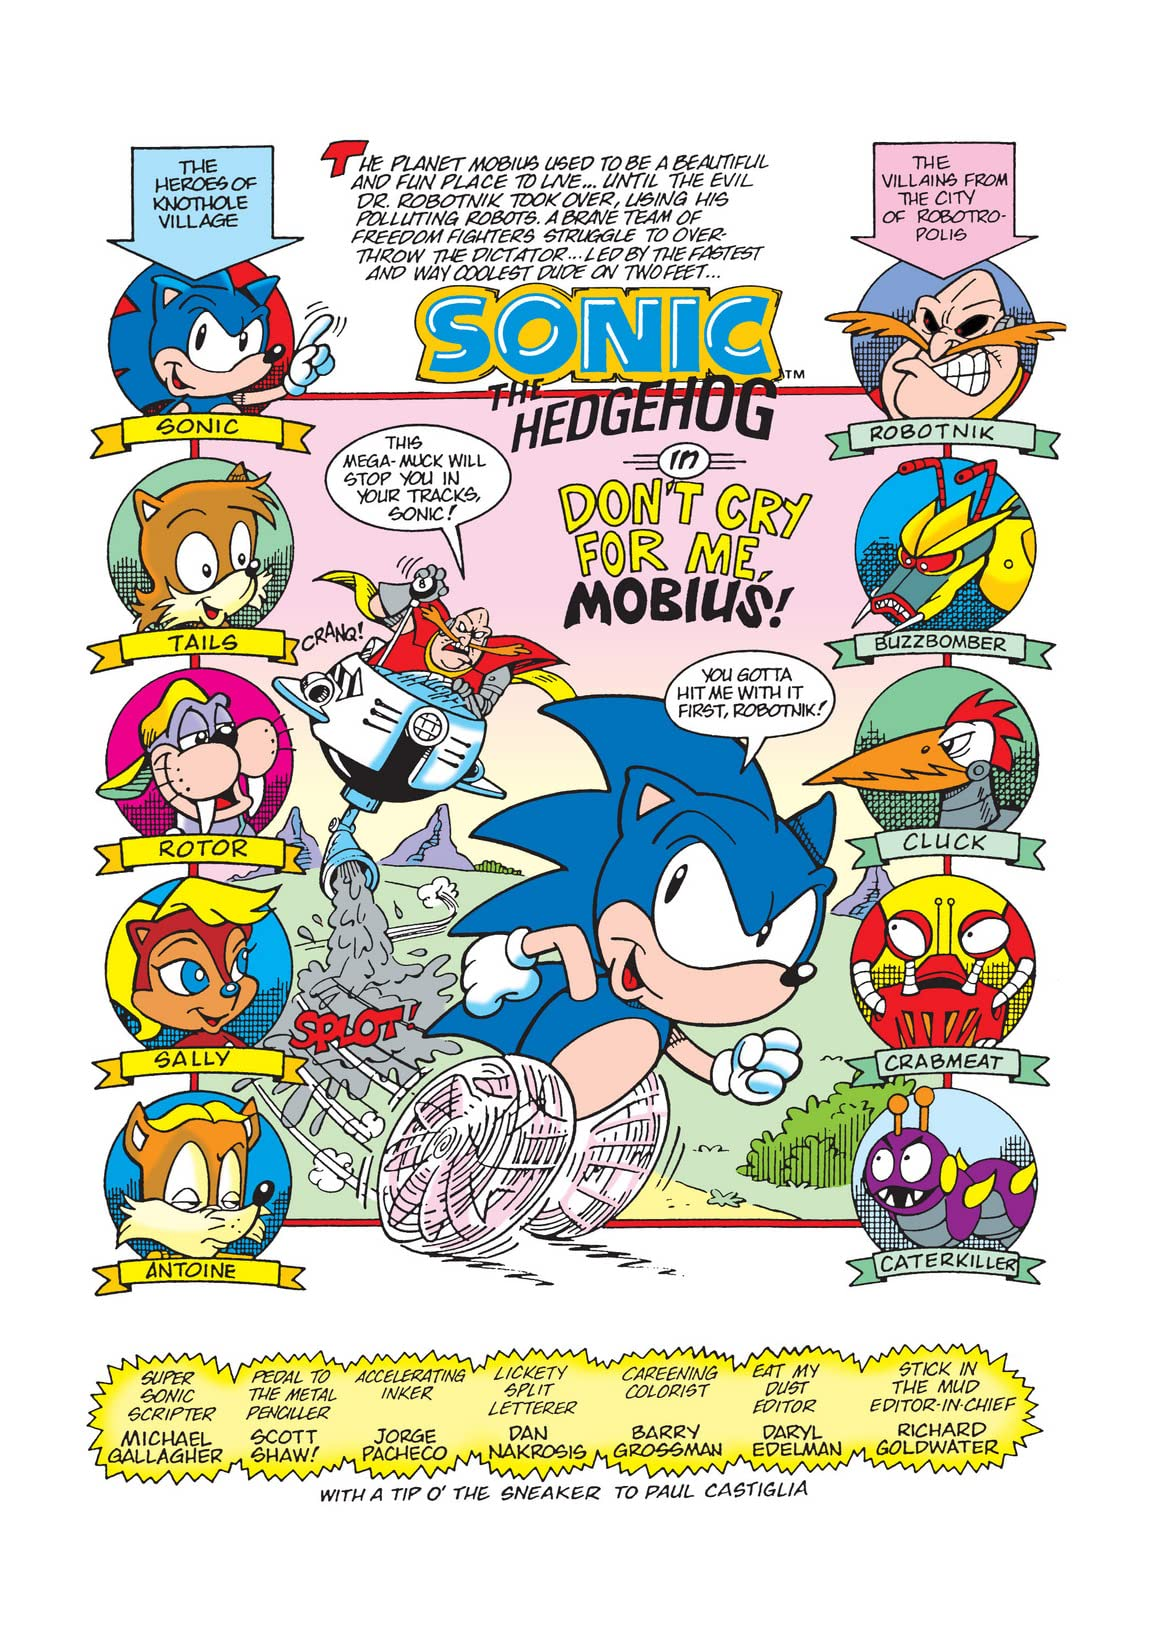 Sonic the Hedgehog Mini Series #0